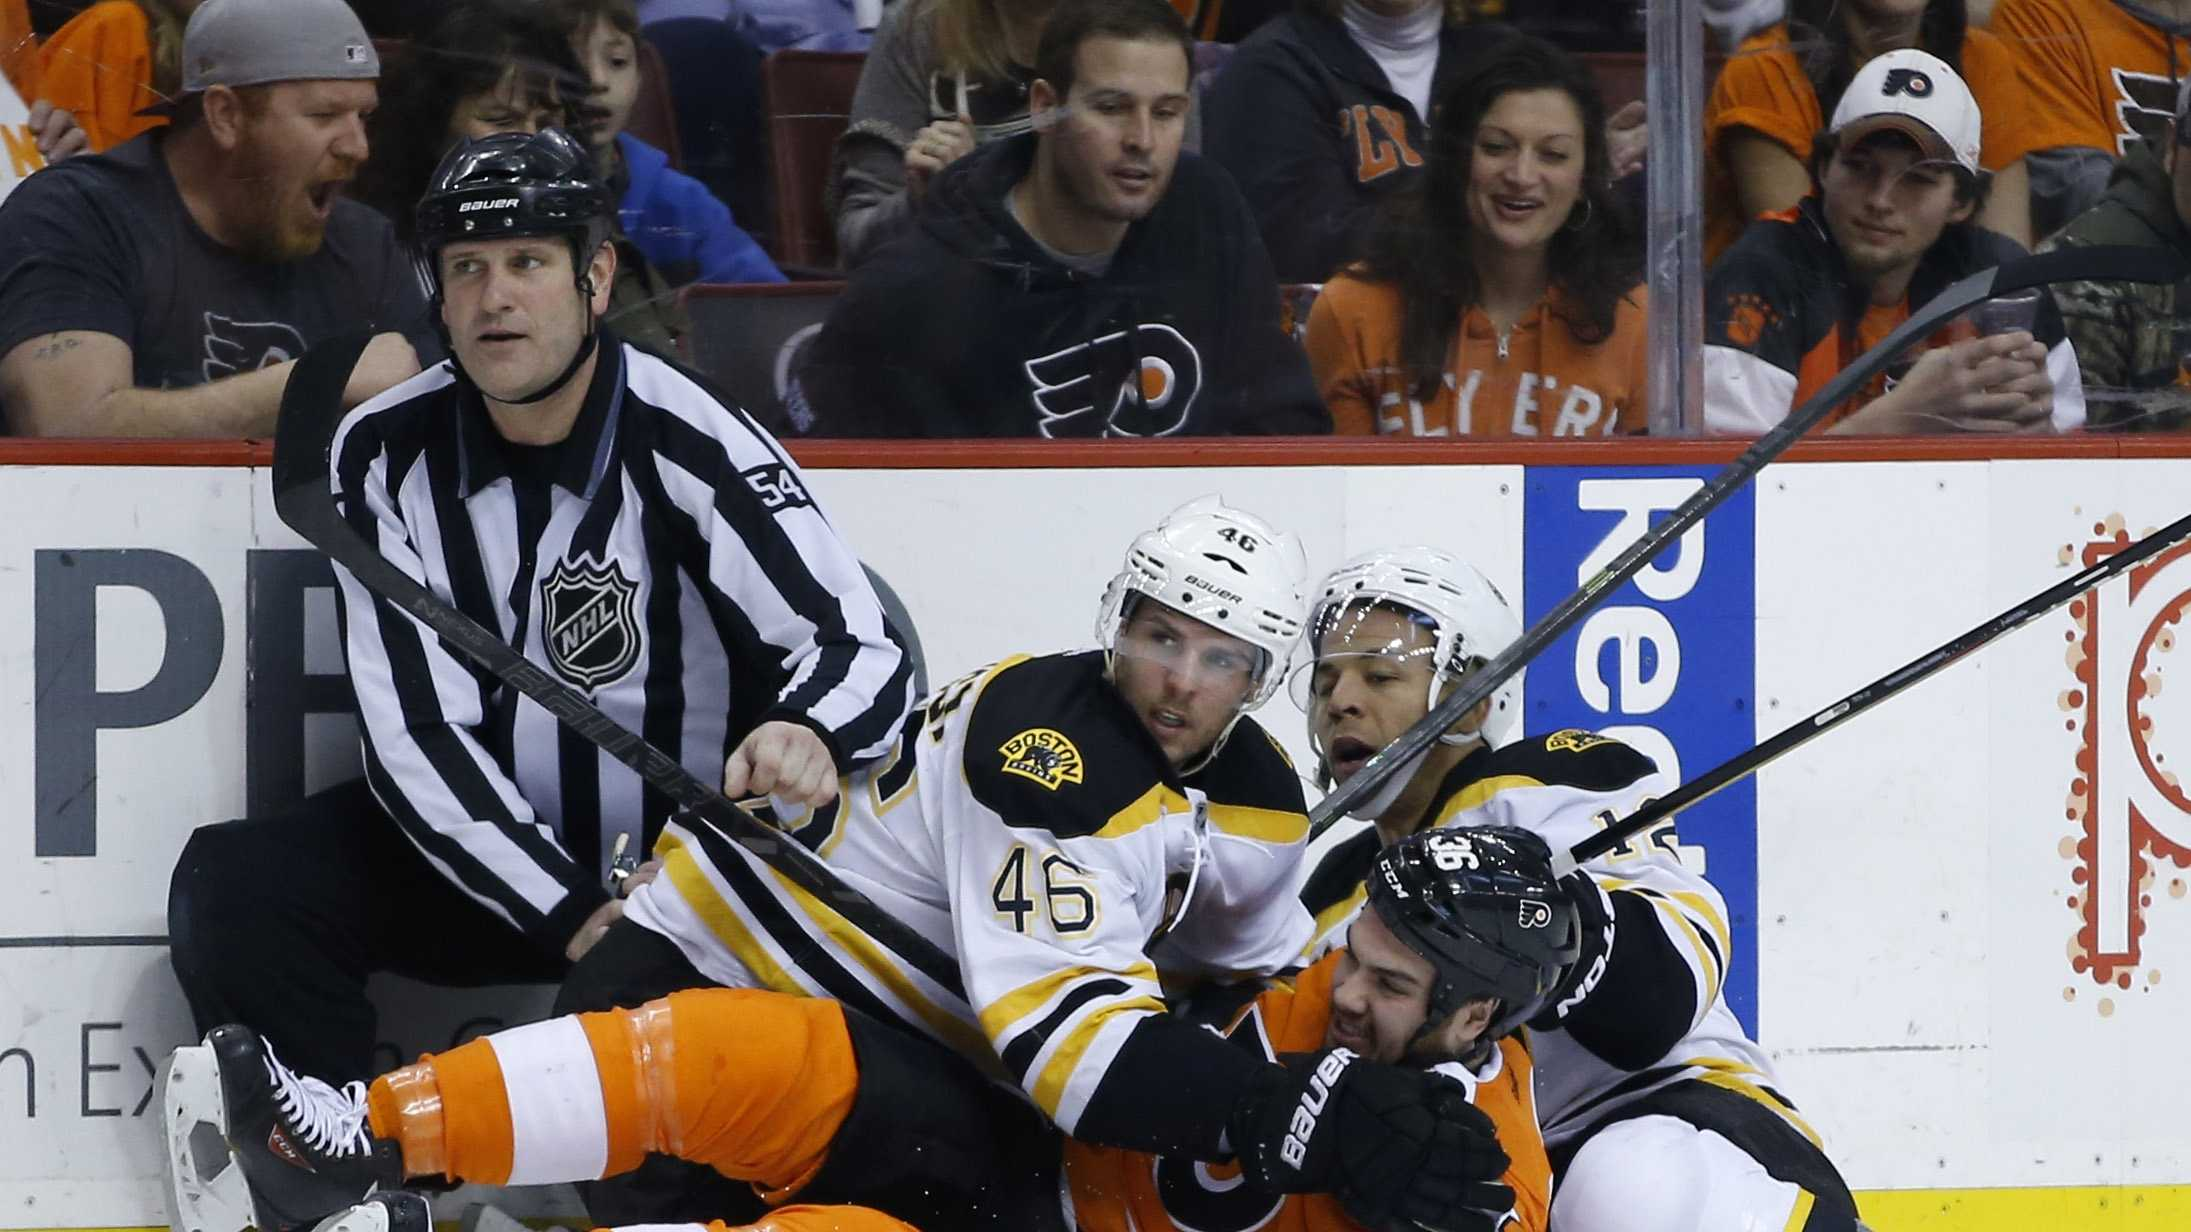 Boston Bruins' Jarome Iginla (12) and David Krejci, of the Czech Republic, collide with Philadelphia Flyers' Zac Rinaldo (36) and linesman Greg Devorski (54) during the first period of an NHL hockey game on Sunday, March 30, 2014, in Philadelphia. (AP Photo/Matt Slocum)